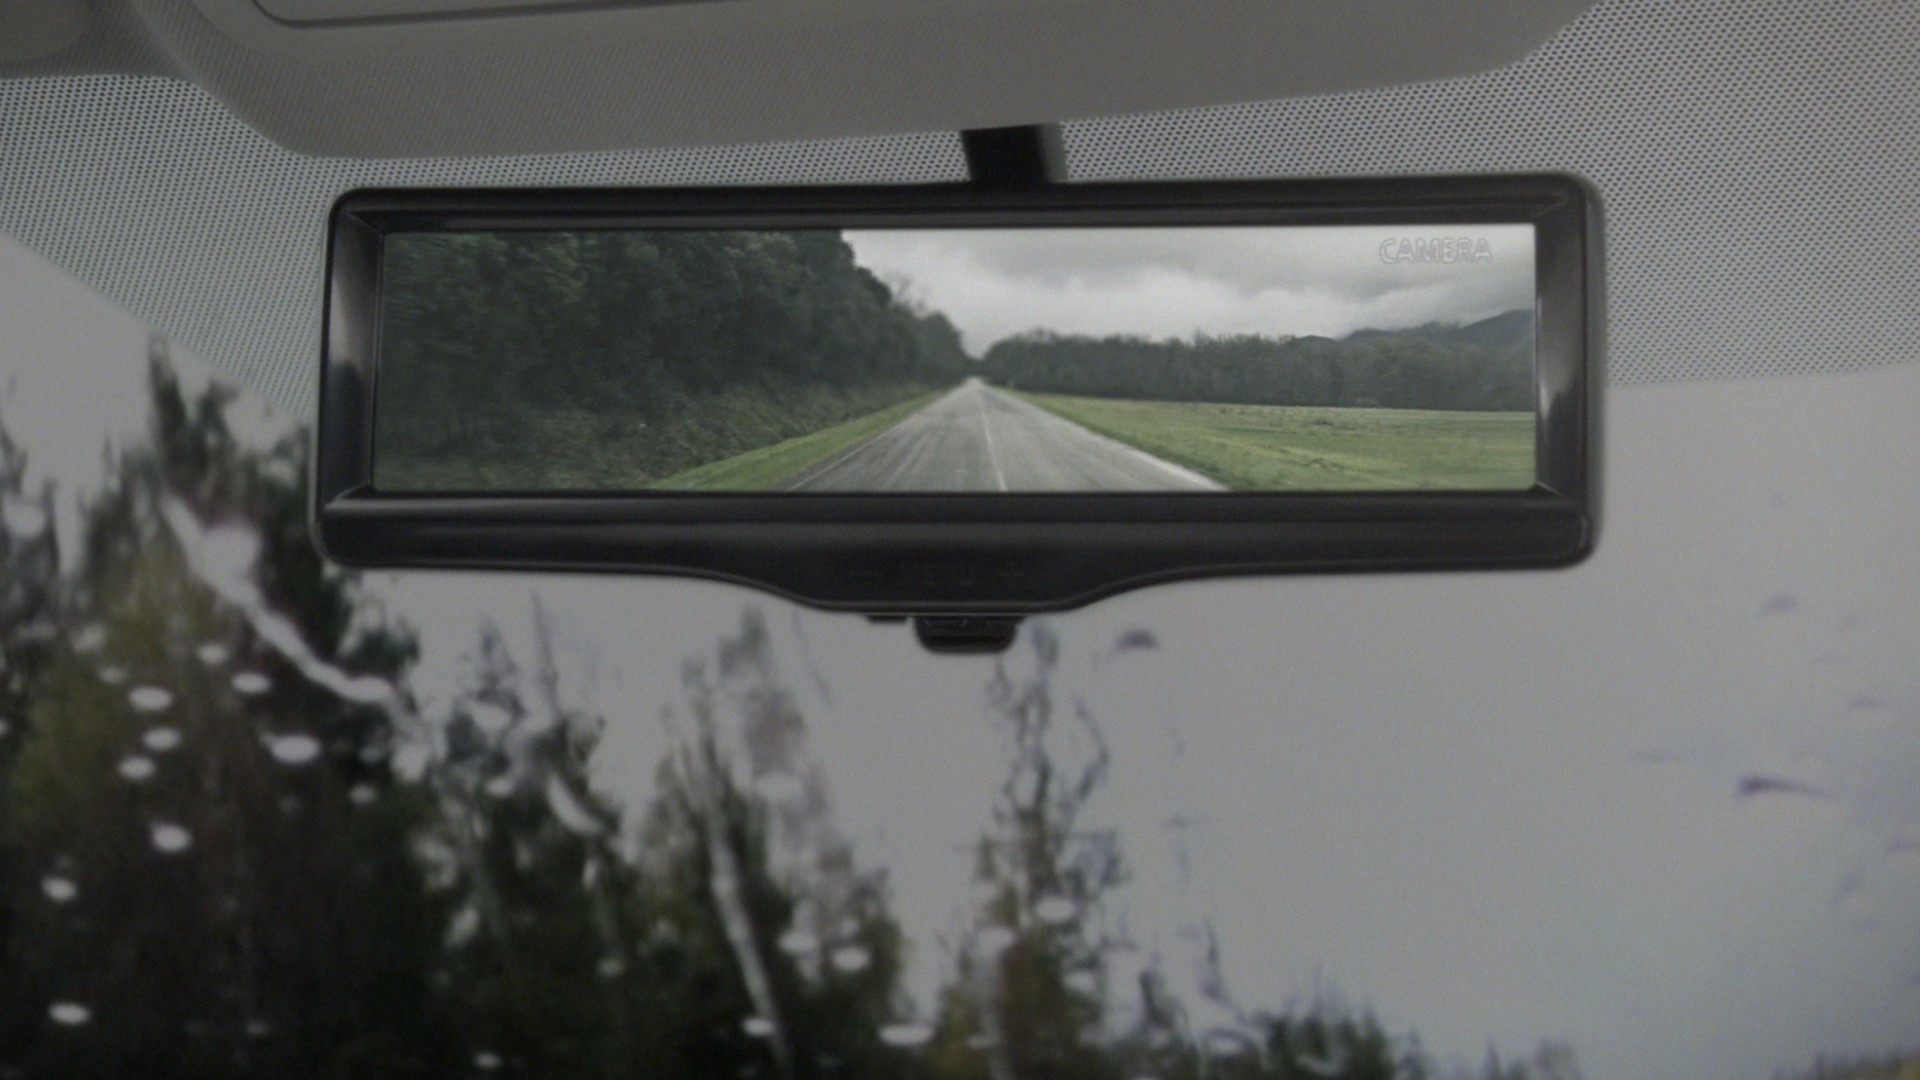 Smart rearview mirror in raining conditions